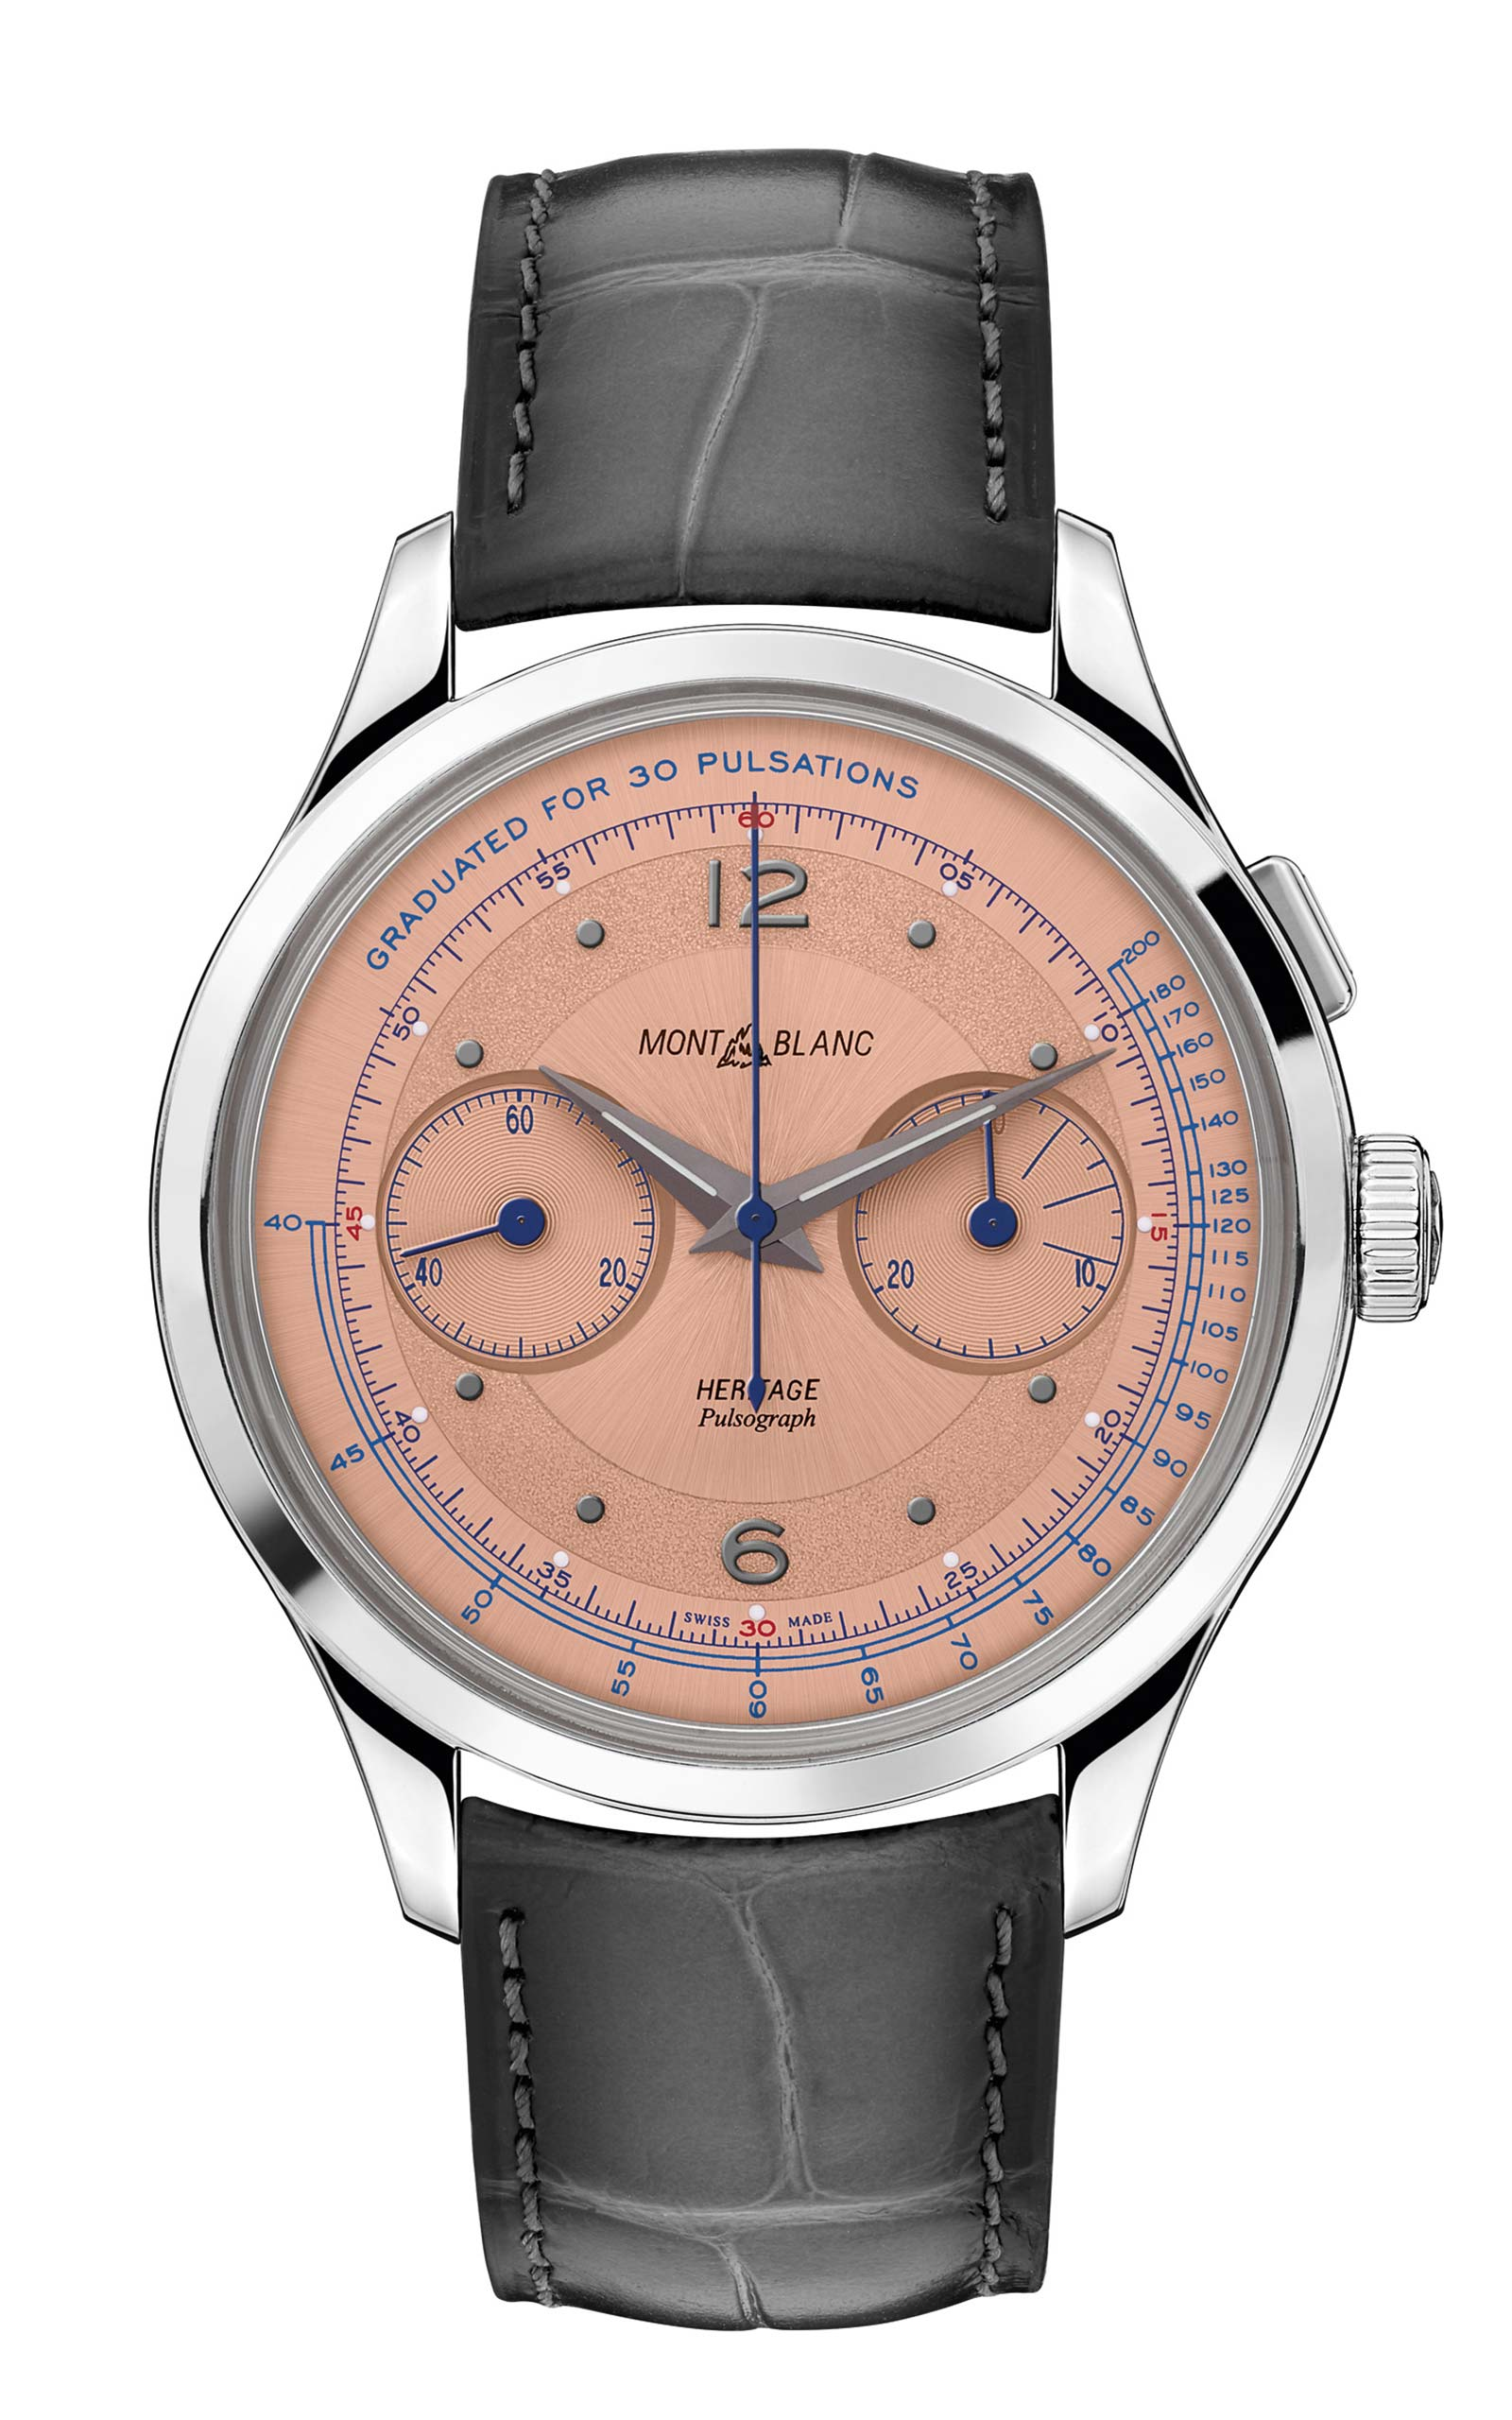 Montblanc-Heritage-Pulsograph Limited Edition